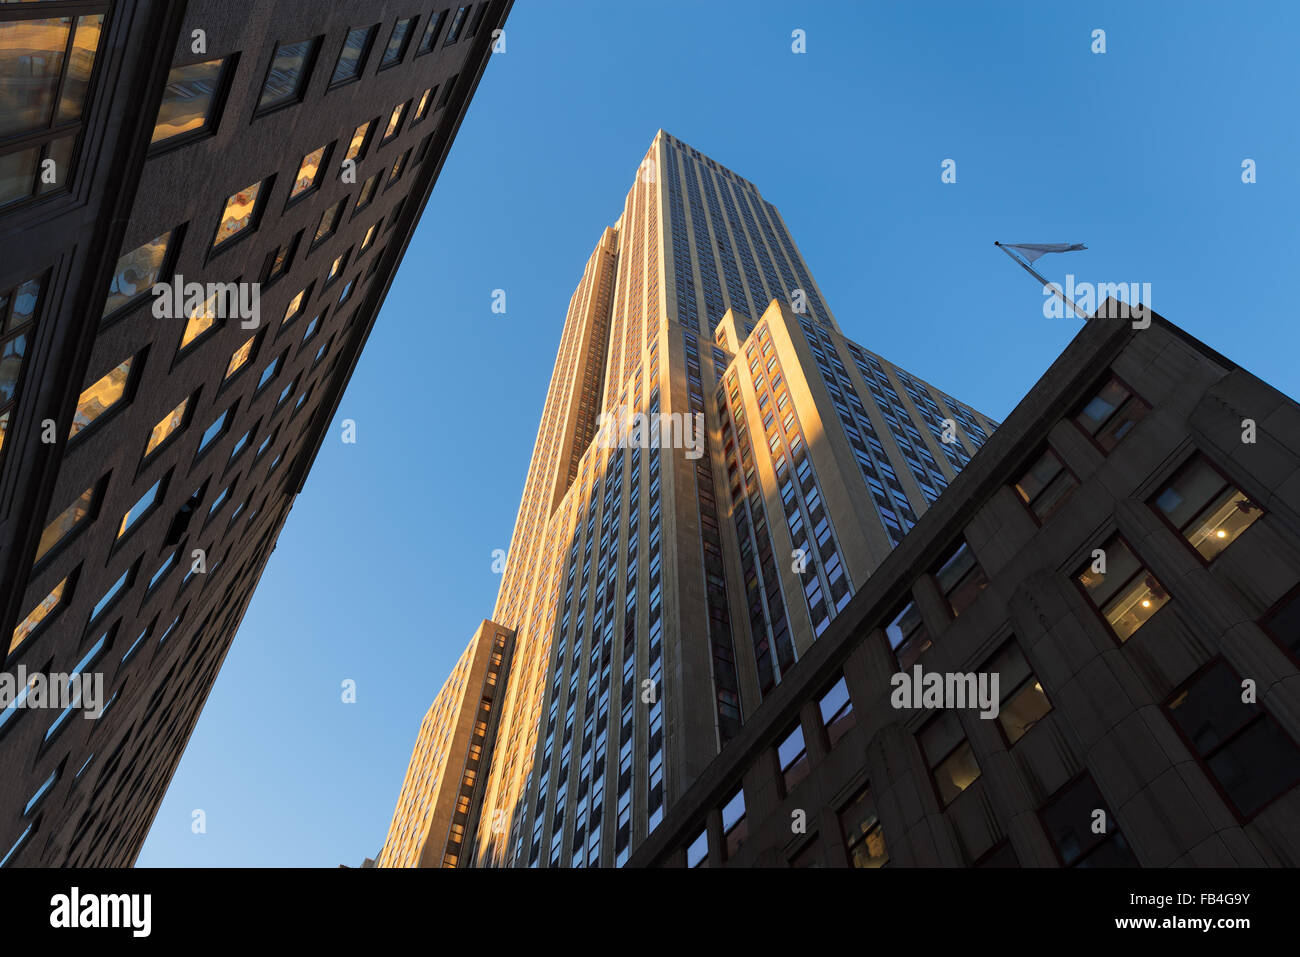 Low Angle Photography Of Building Free Stock Photo: Empire State Building At Sunset From Below. Low Angle View